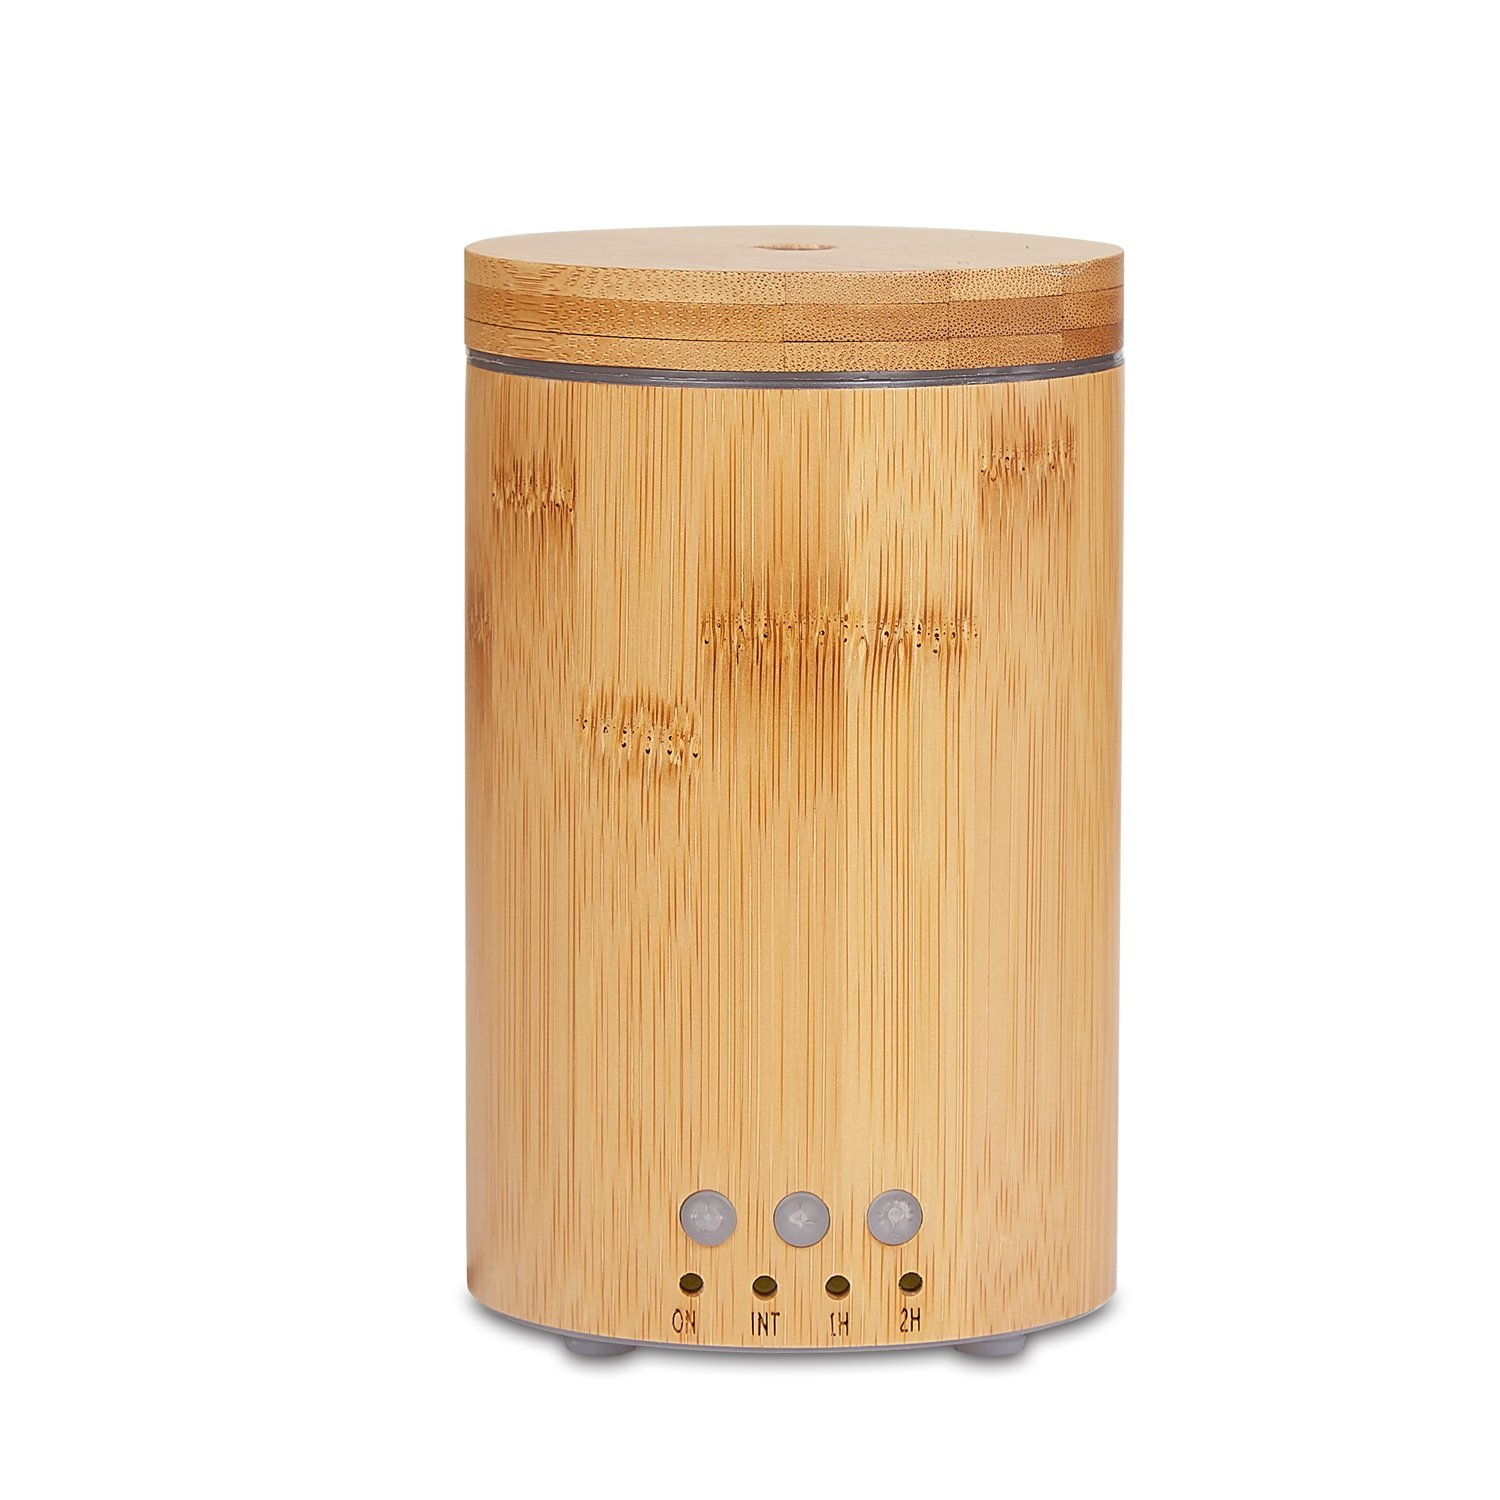 150ML Natural Bamboo Design Air Humidifier With Colors Night Light Timing Function Aroma Essential Oil Diffuser With Two Spray Modes